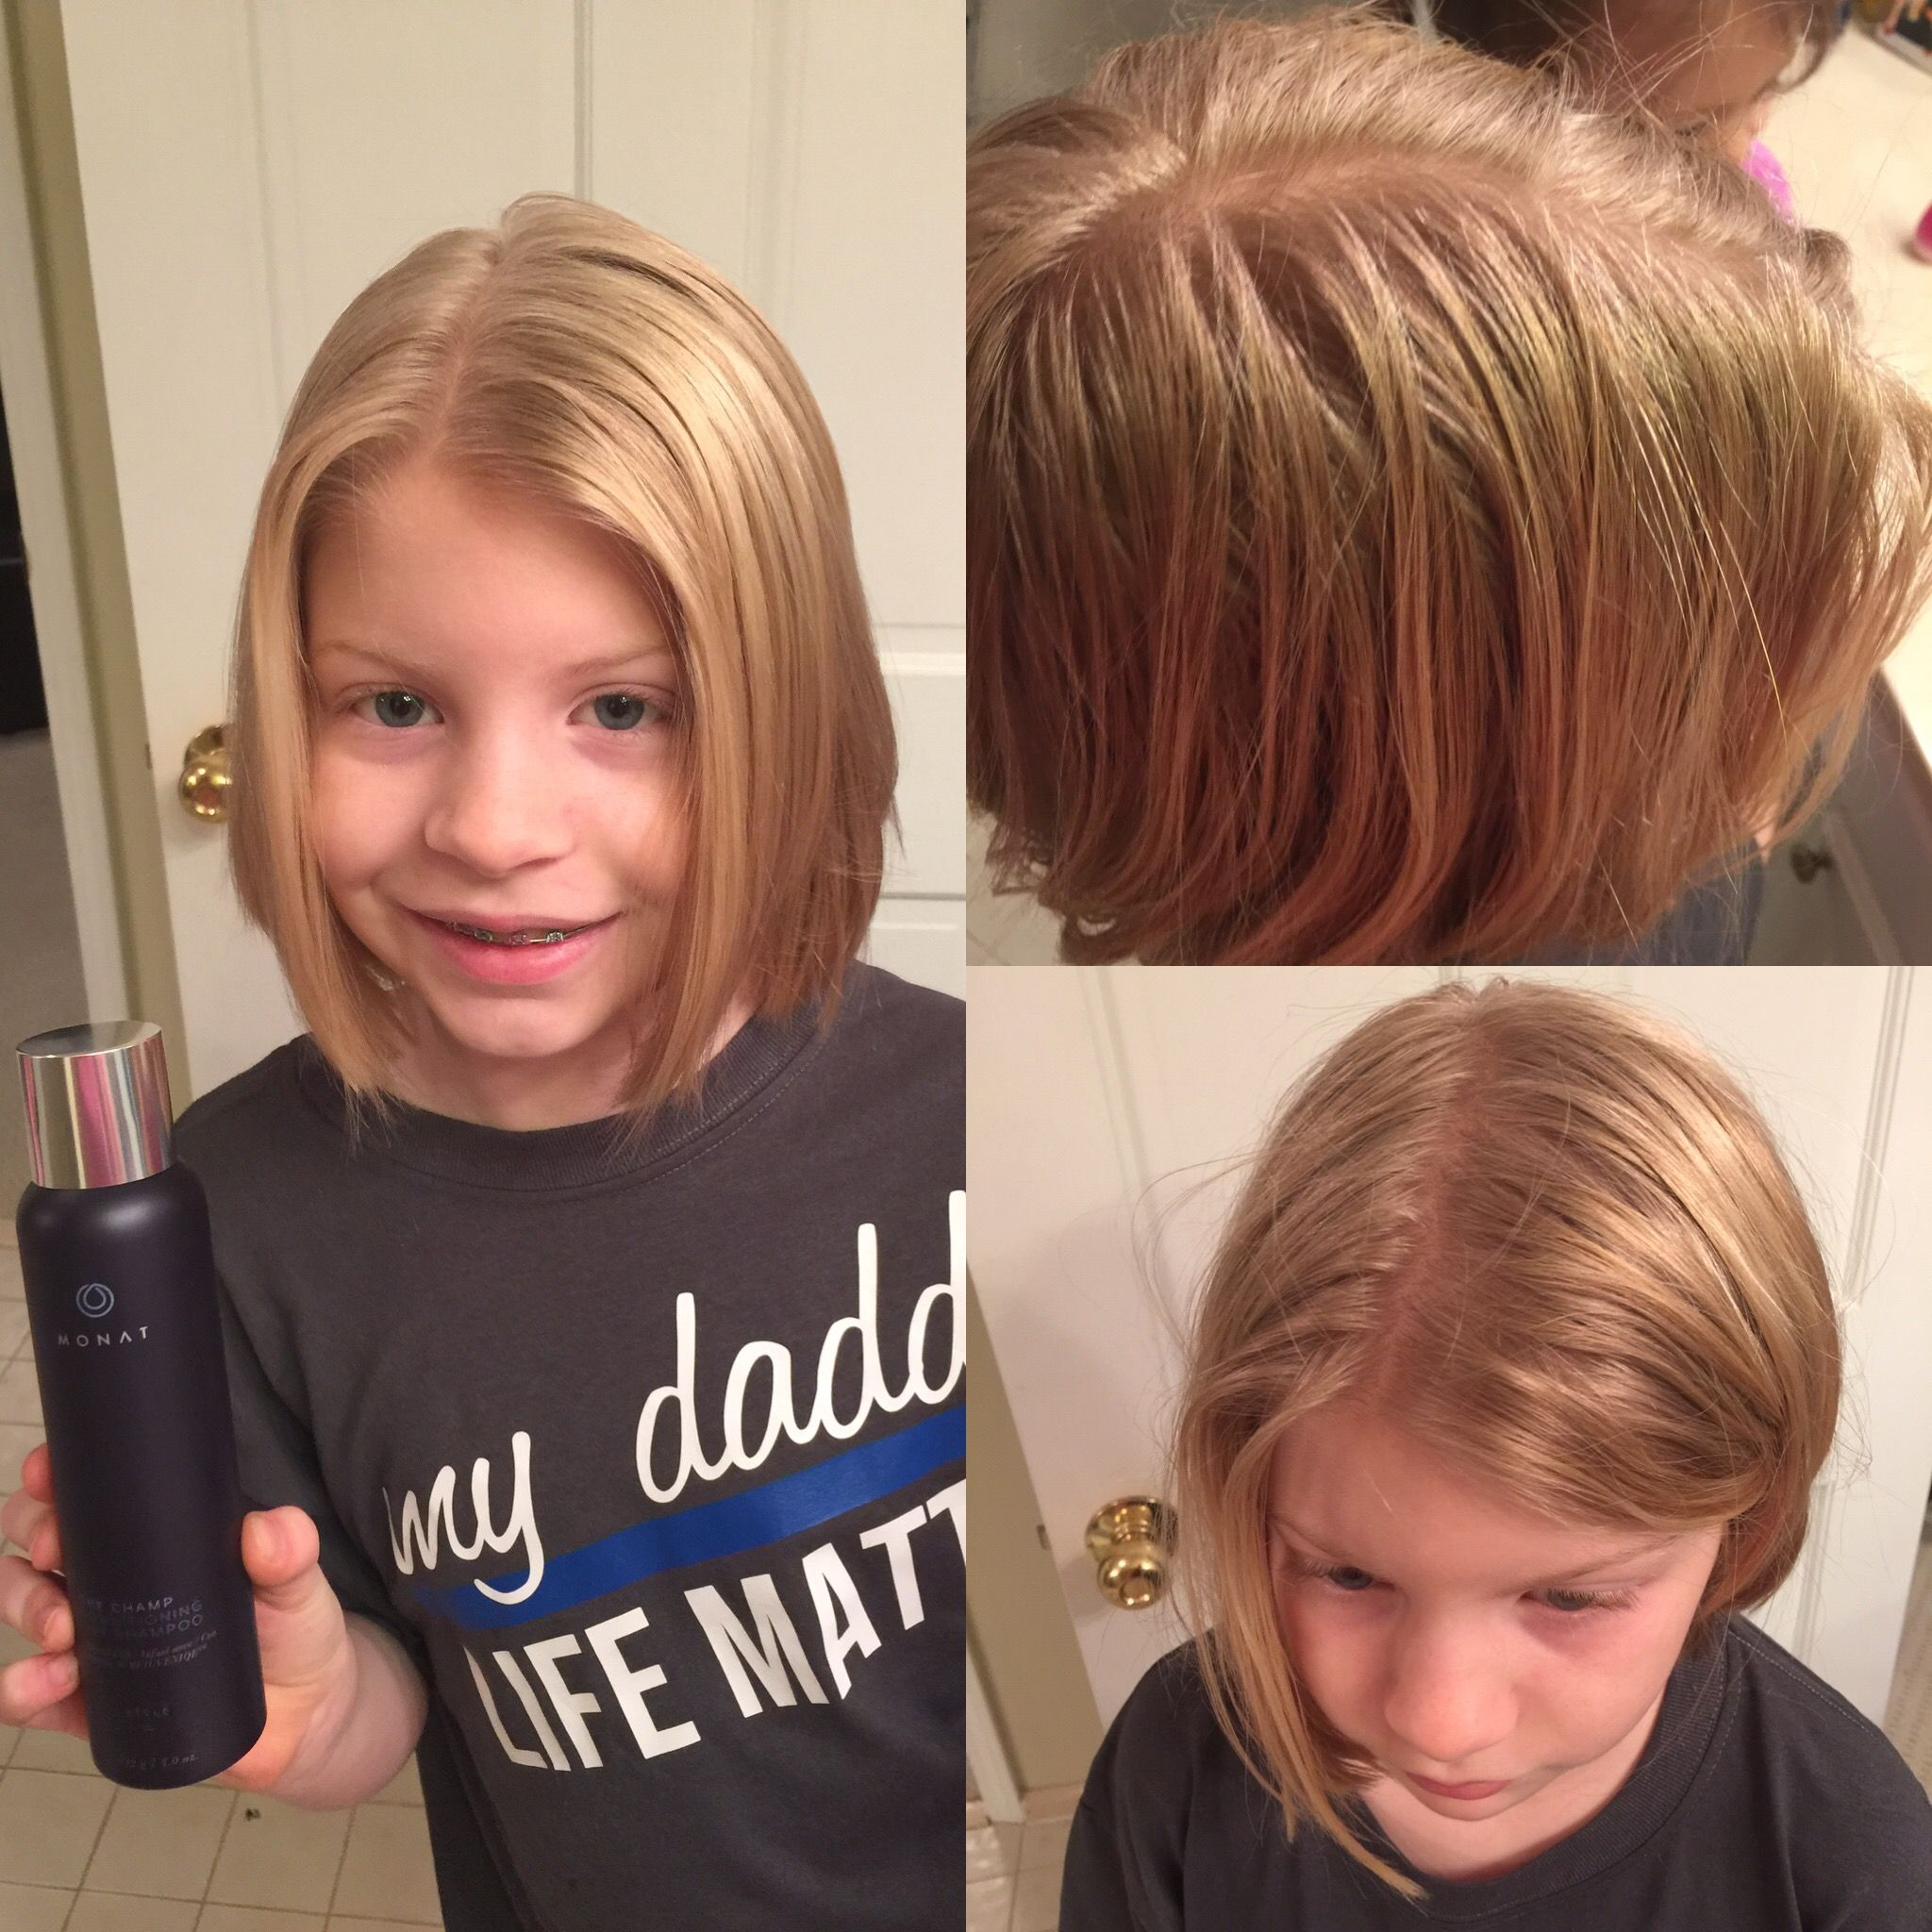 Before and After using Monat's dry shampoo. After pic is